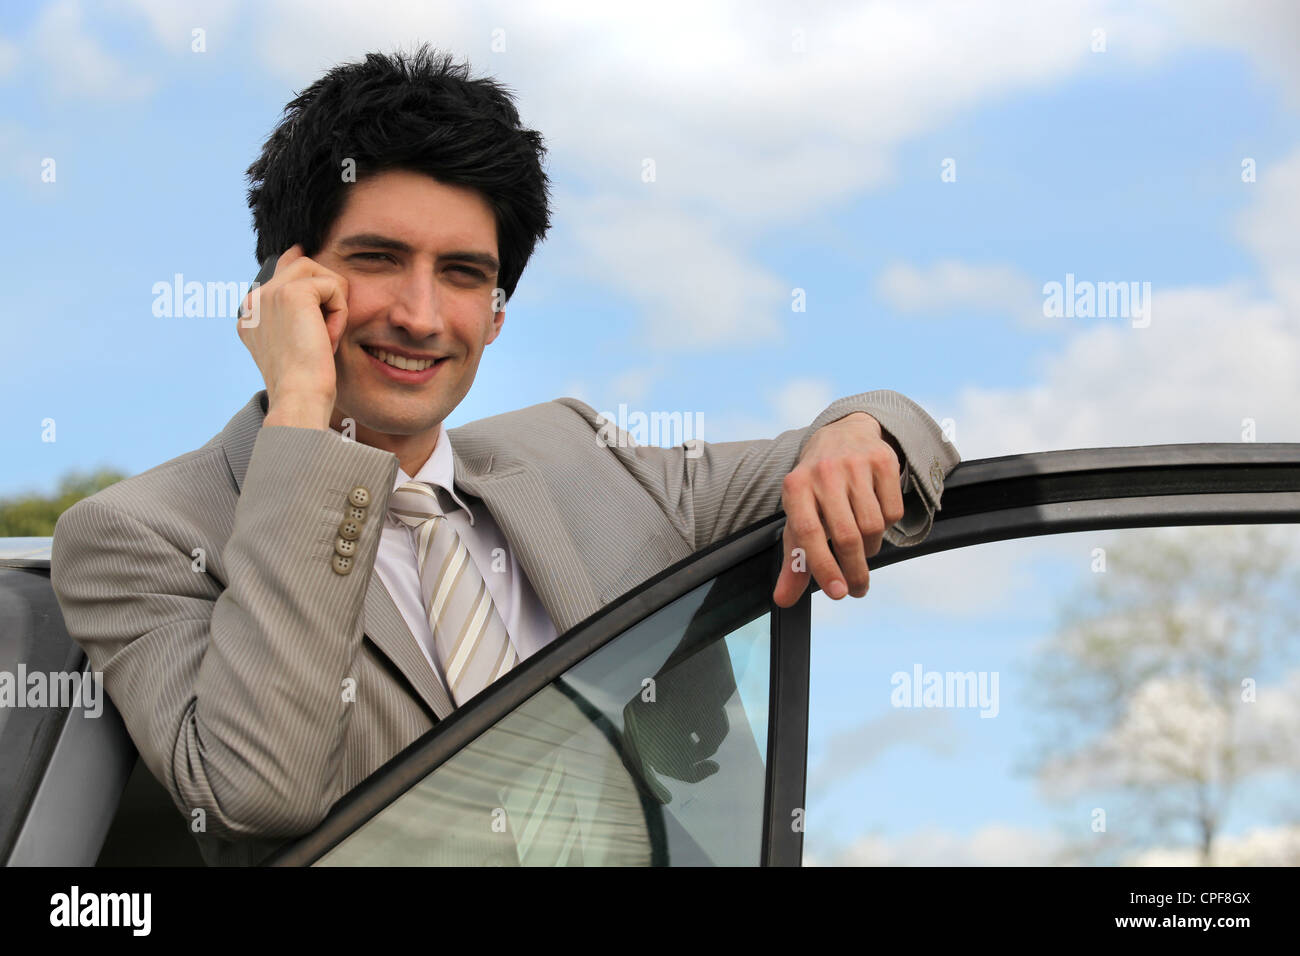 Man using mobile in his car - Stock Image